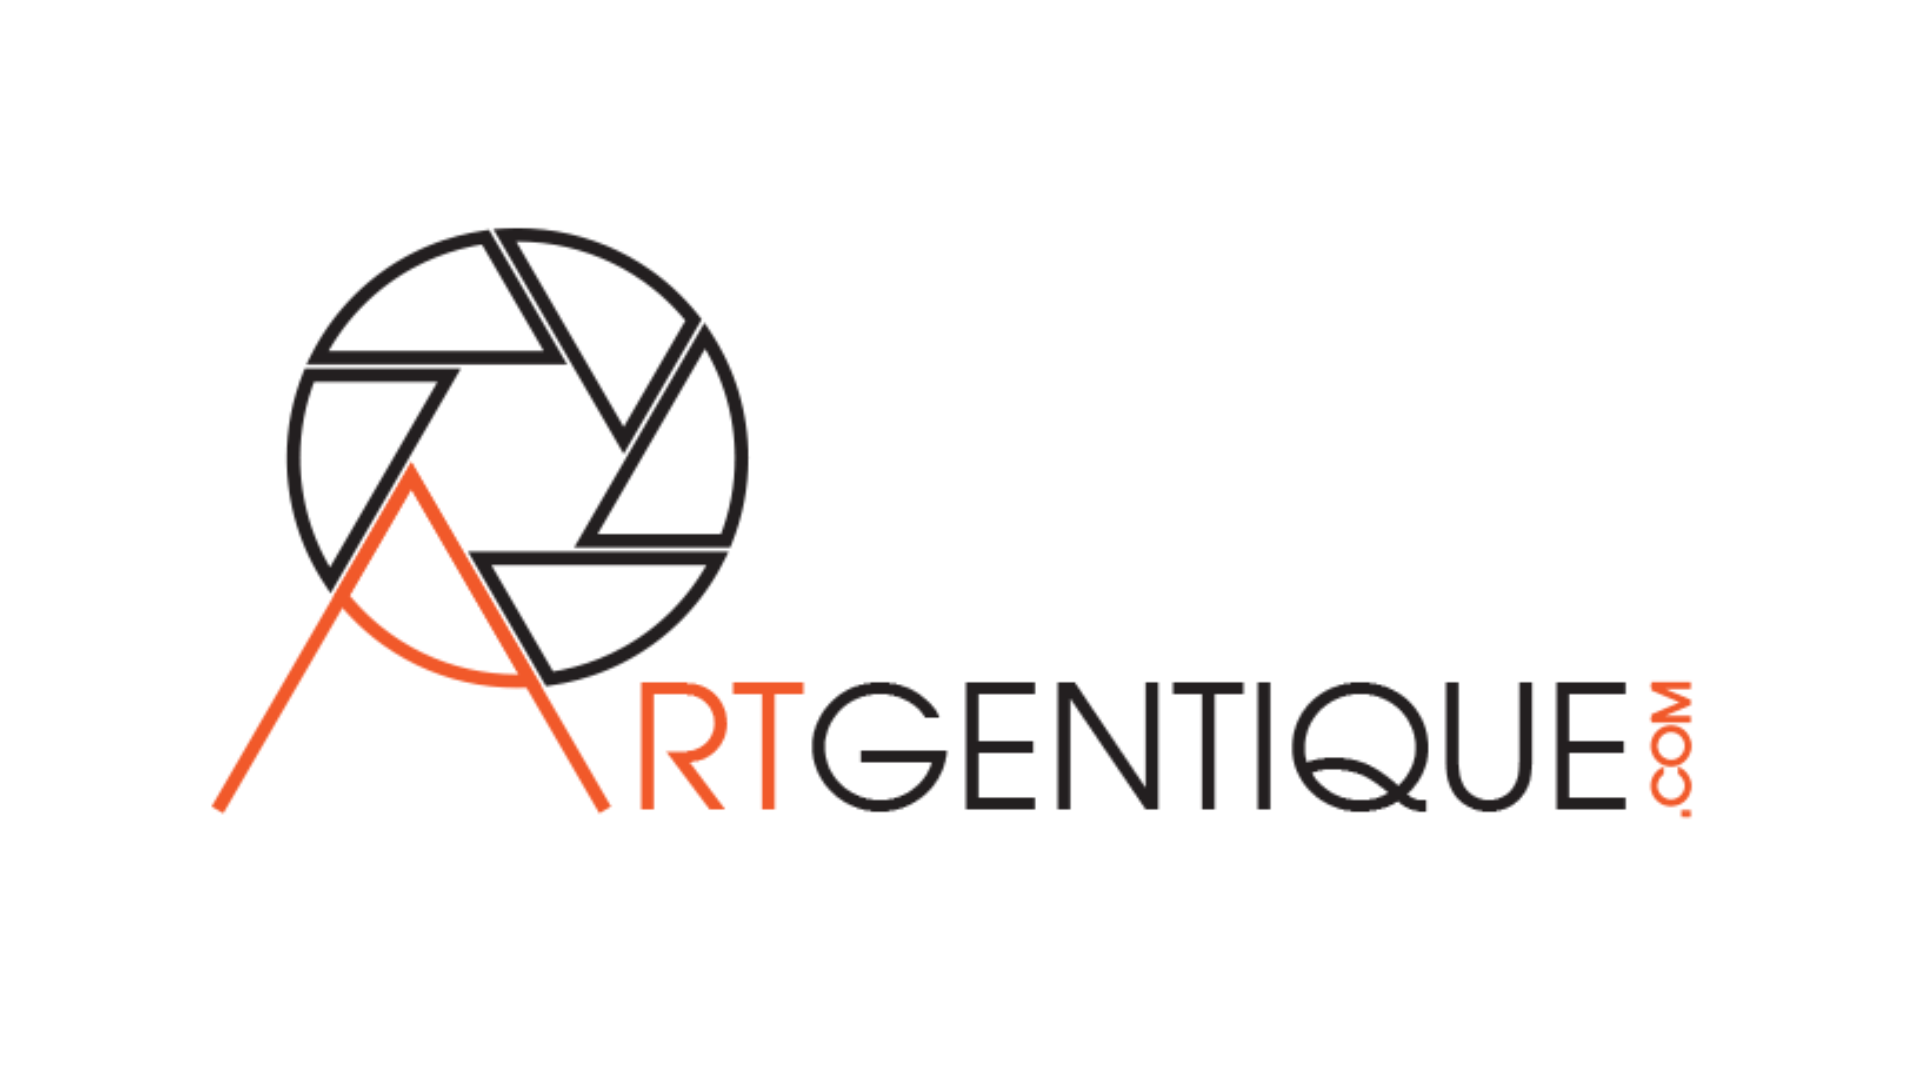 AR[t]GENTIQUE • Photography